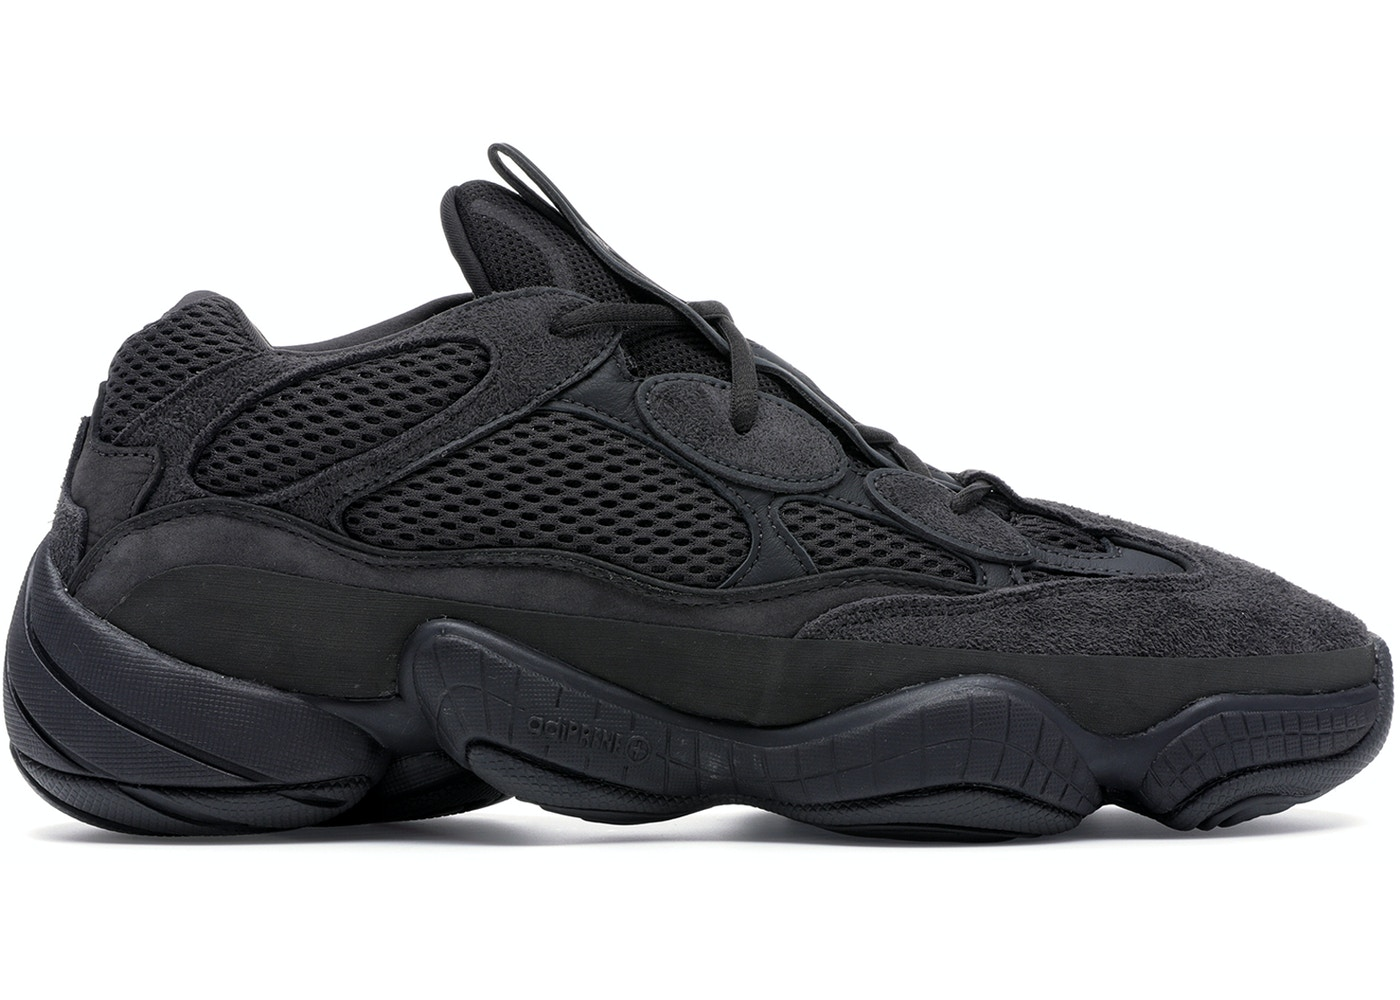 The Dark Side of The Moon: Yeezy 500 Utility Black Drop in July